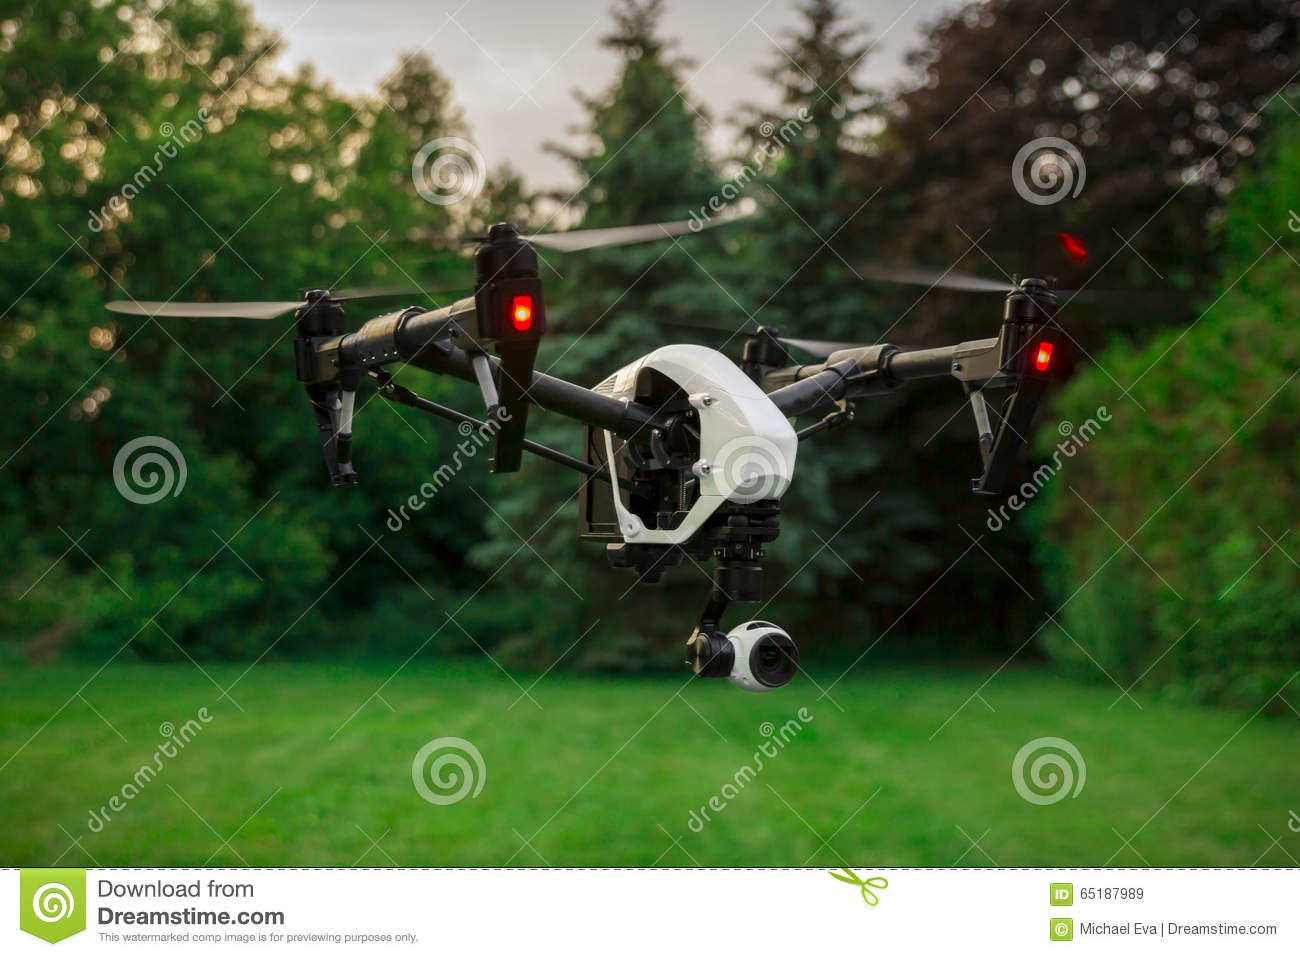 Aerial Drone Videography & Photography 3 Stock Image - Image